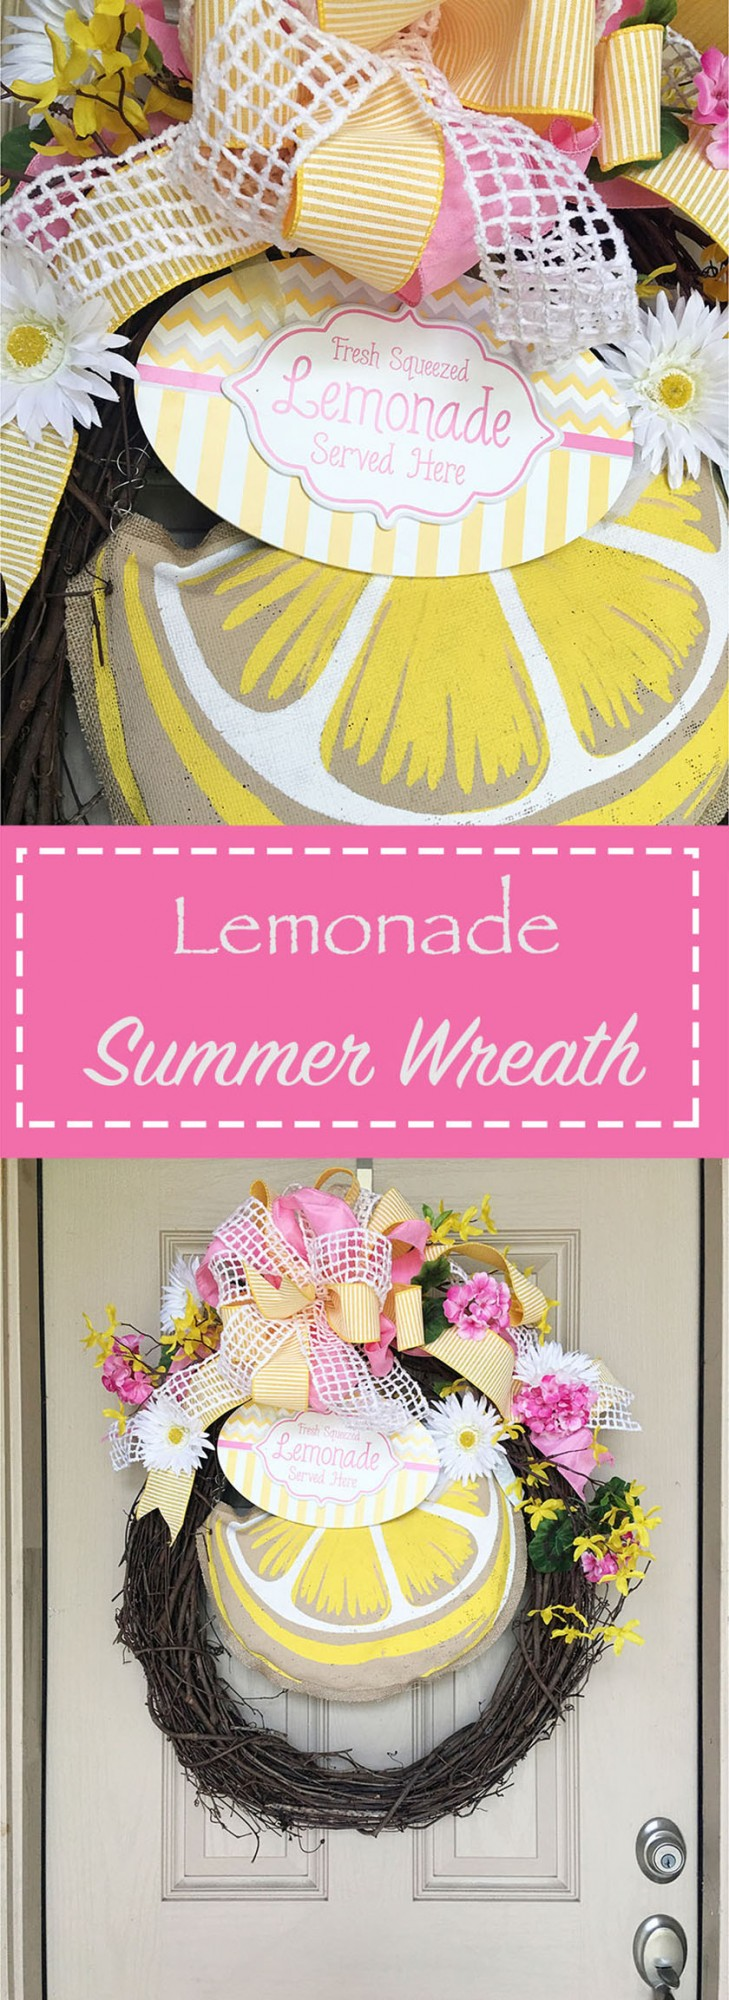 With just a few craft store supplies, you can make this cute summer wreath in an afternoon! Get the tutorial => craftaholicsanonymous.net